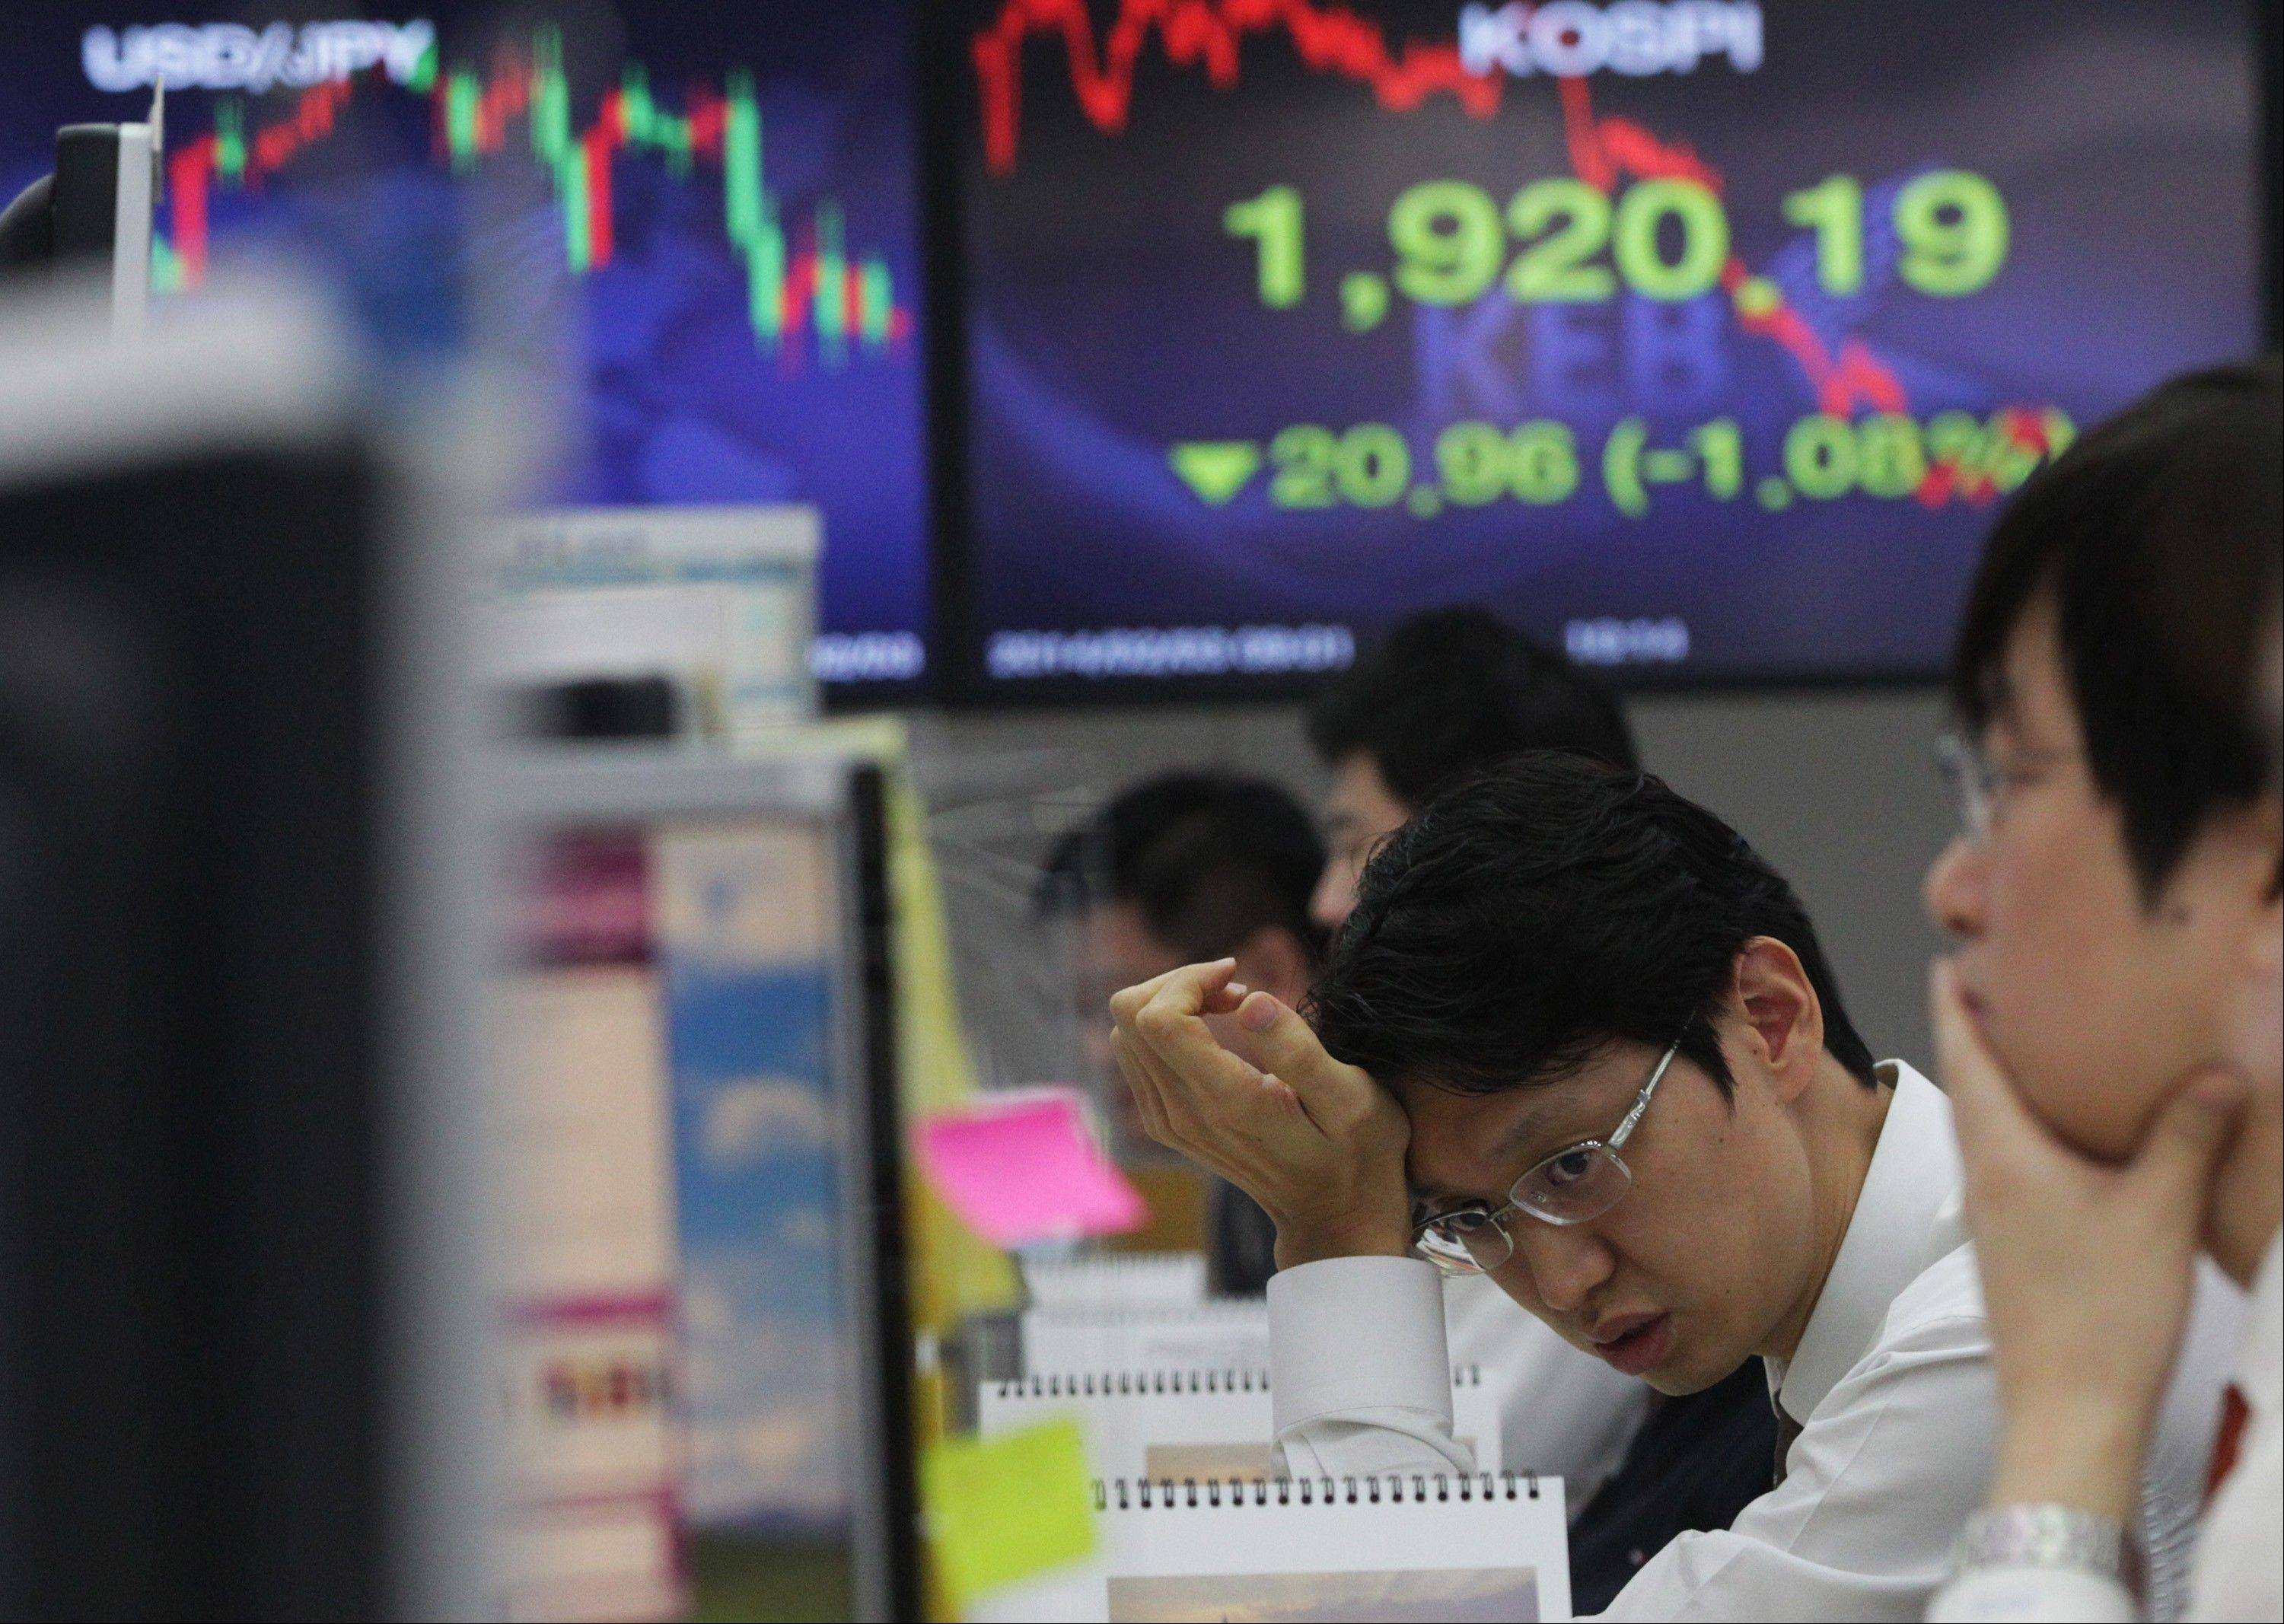 A currency trader works at the Korea Exchange Bank headquarters in Seoul, South Korea. Emerging market worries have helped drive U.S. stocks� disappointing performances so far this year.